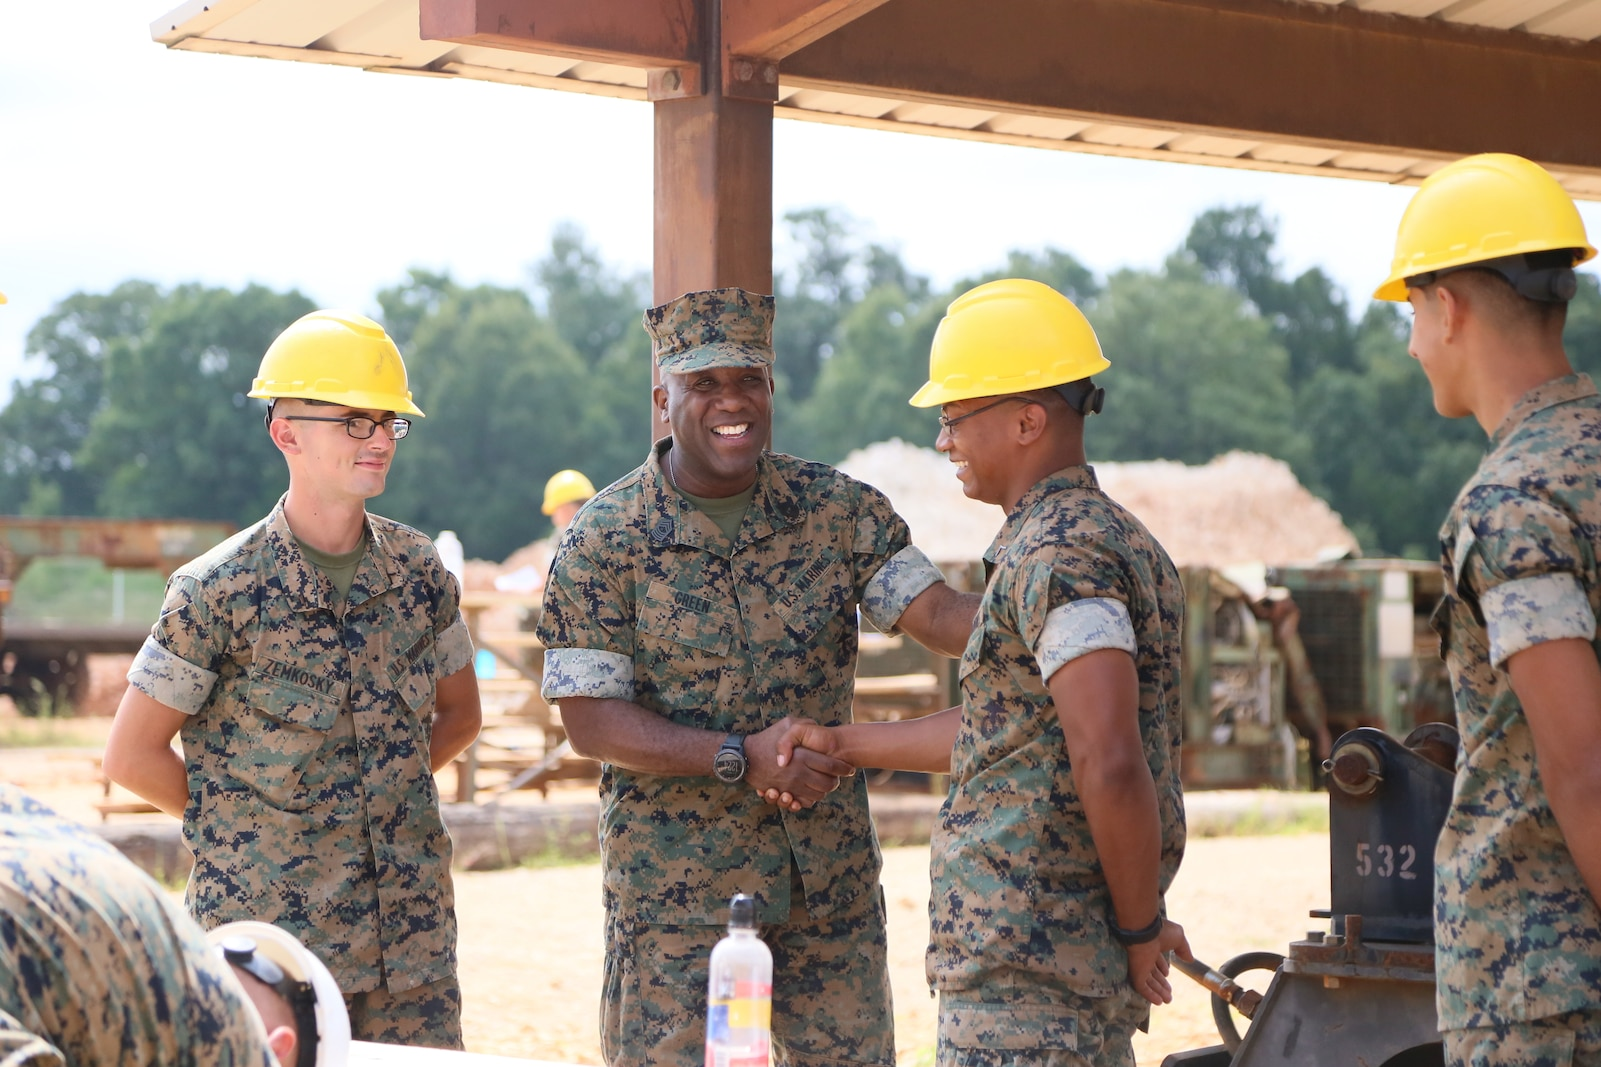 Sergeant Major of the Marine Corps Ronald L. Green greets students on Fort Leonard Wood, MO August 28th, 2017 at Engineer Equipment Instruction Company's training area. The student's state of well-being and continuing to learn their Military Occupational Specialty are the core for the Marine Corps future success. (U.S. Marine Corps photo by Sgt. Teng Yang)